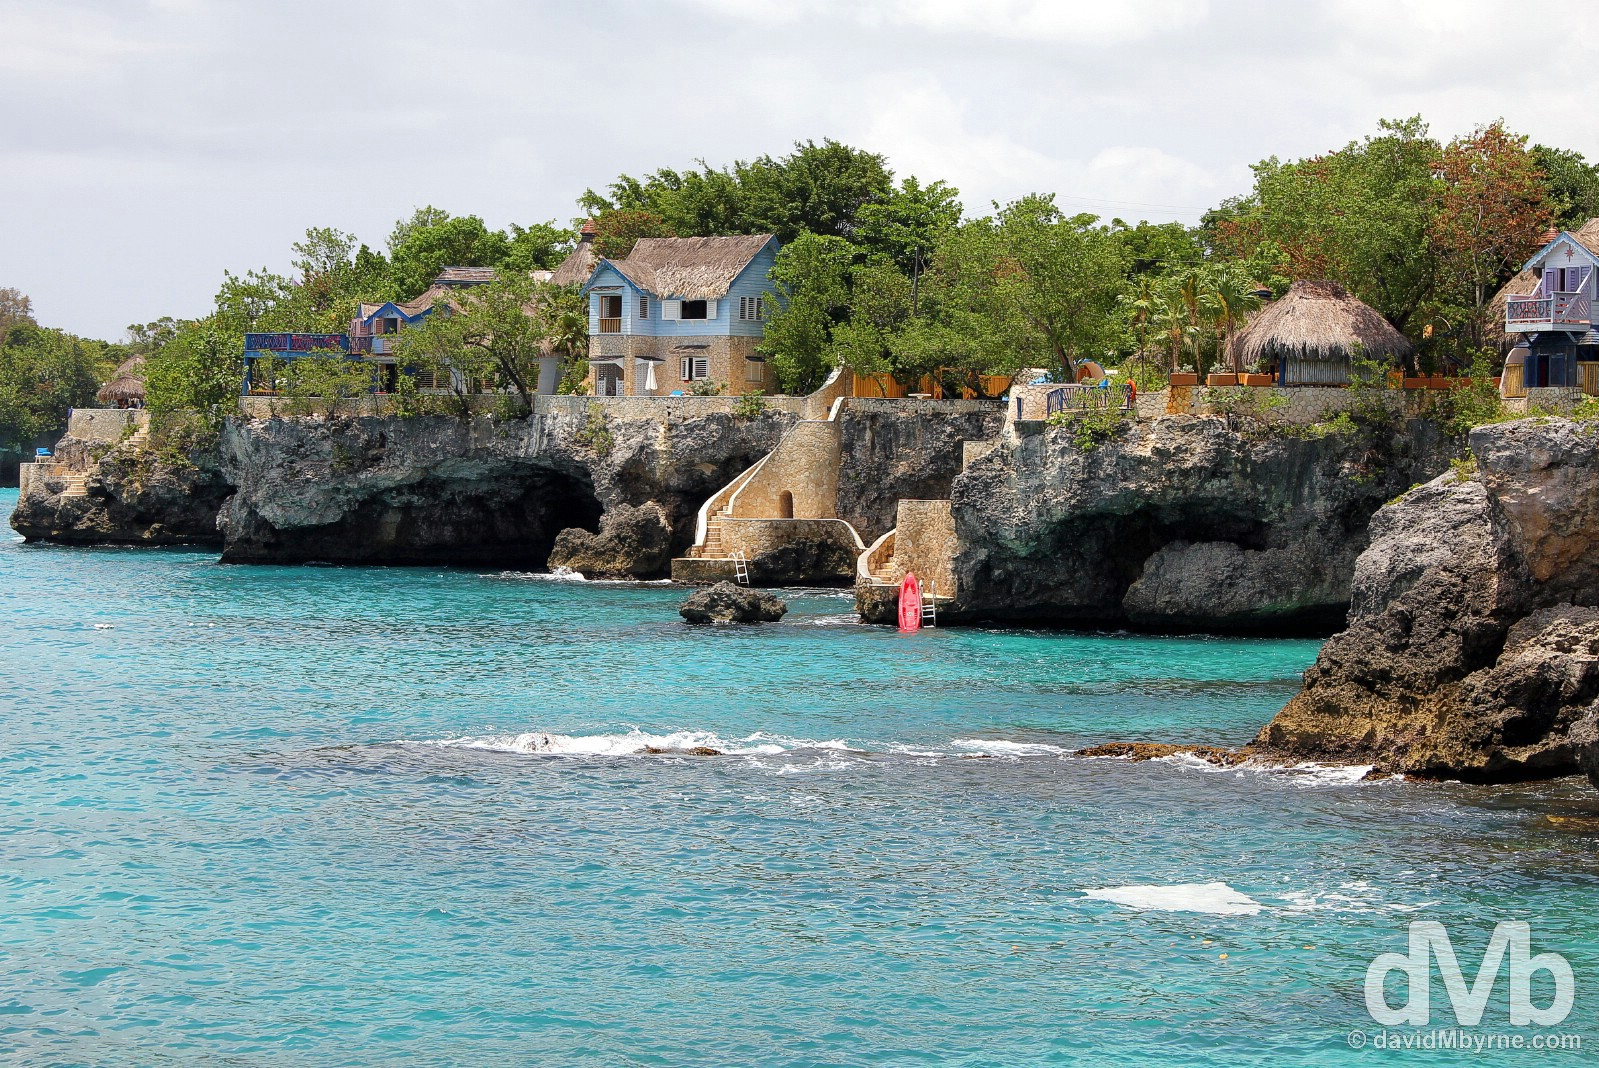 Negril, Jamaica. May 14, 2015.